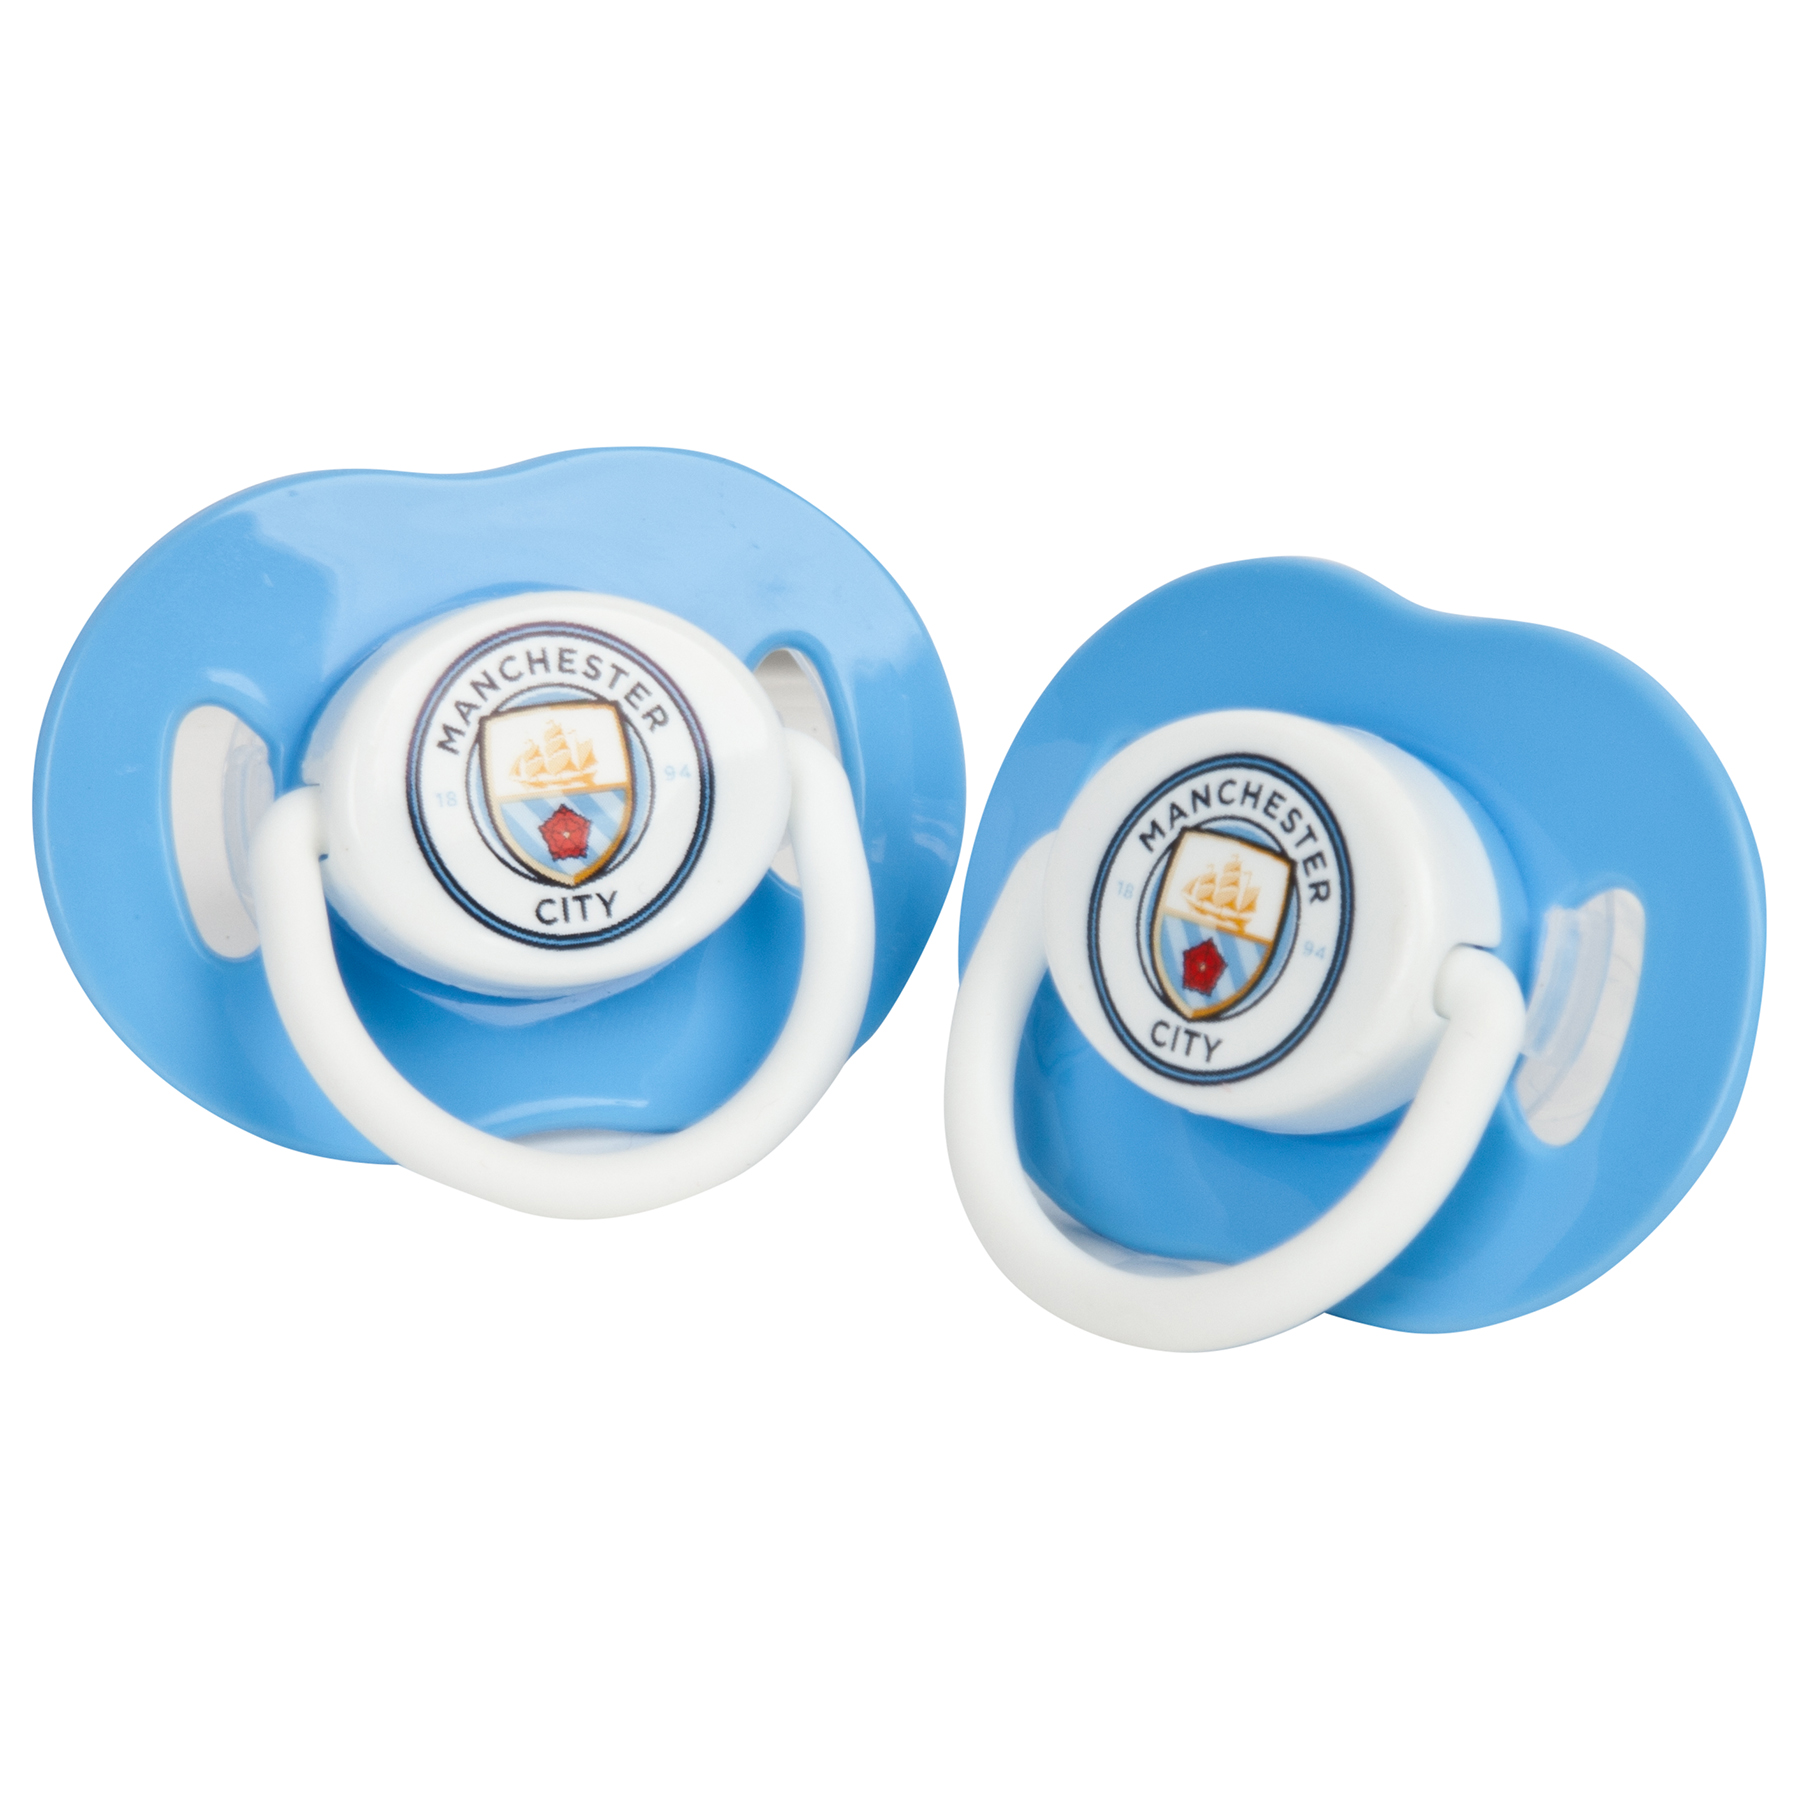 Manchester City Soothers - 2 Pack